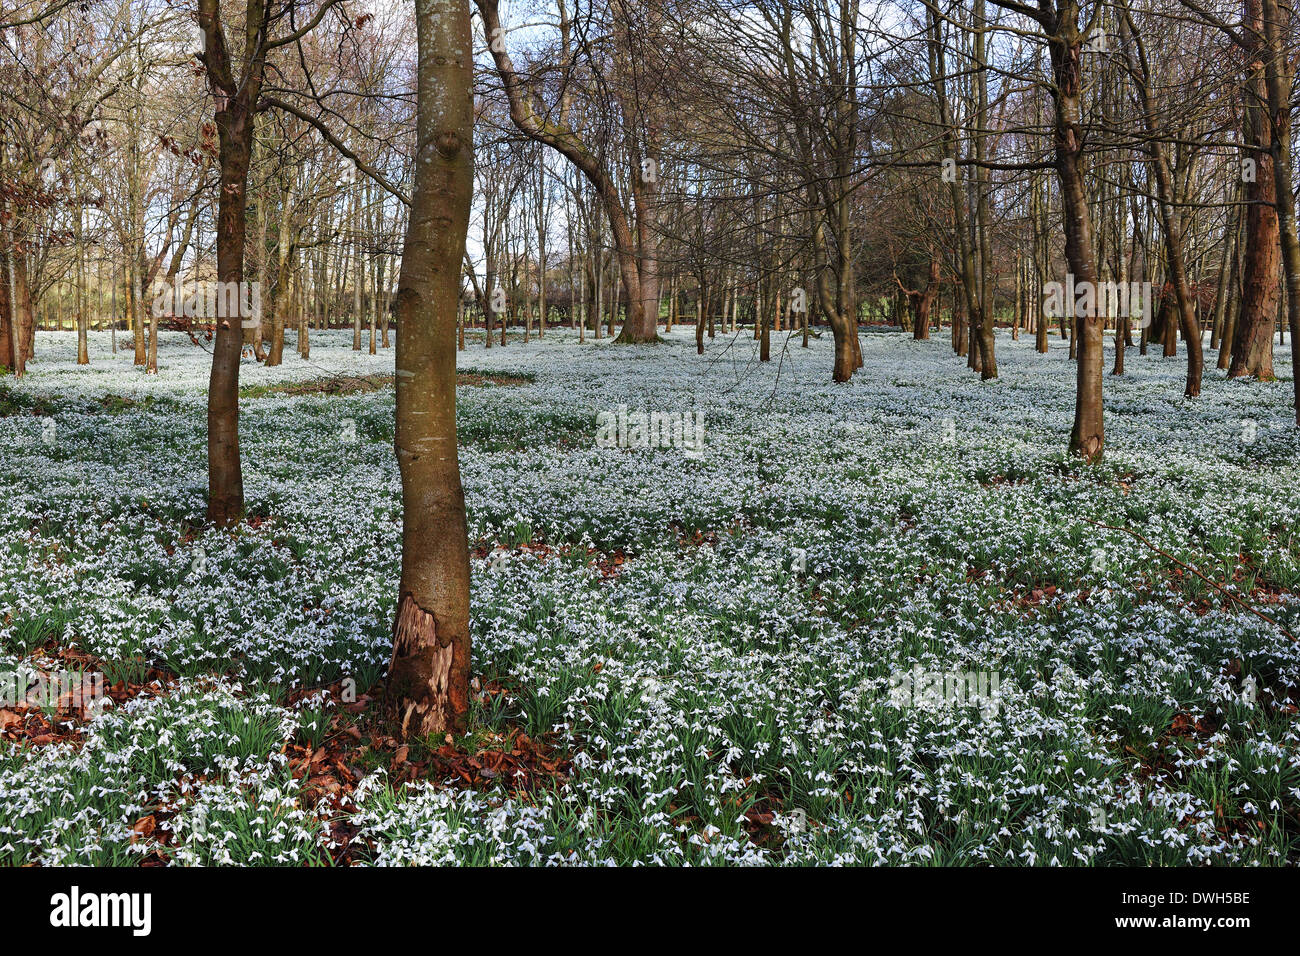 Profusion of Snowdrops in an English Woodland glade - Stock Image